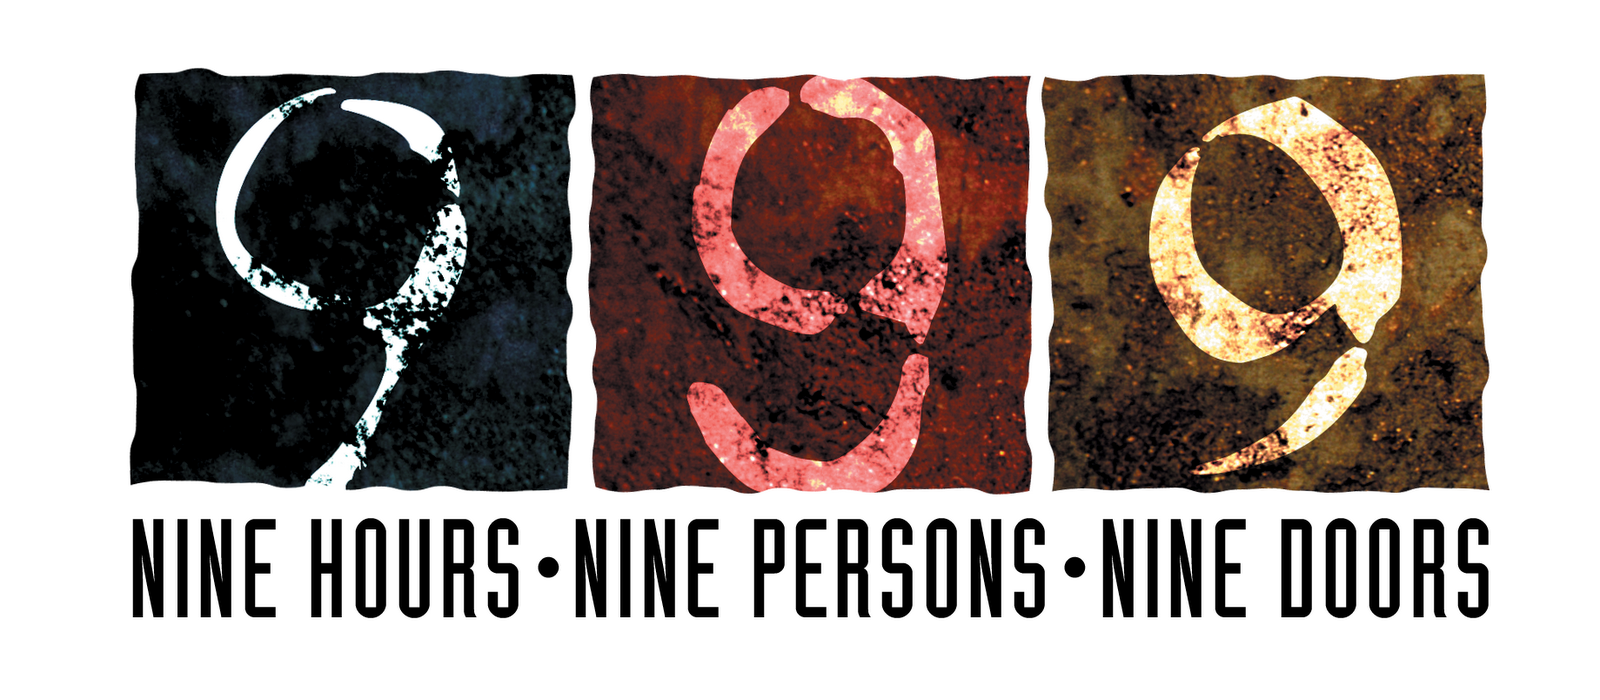 ... Nine Hours Nine Persons Nine Doors by For Awesome Review Of 999 9 Hours 9 ...  sc 1 st  Mouselink & nine hours nine persons nine doors - 28 images - 999 nine hours ... pezcame.com